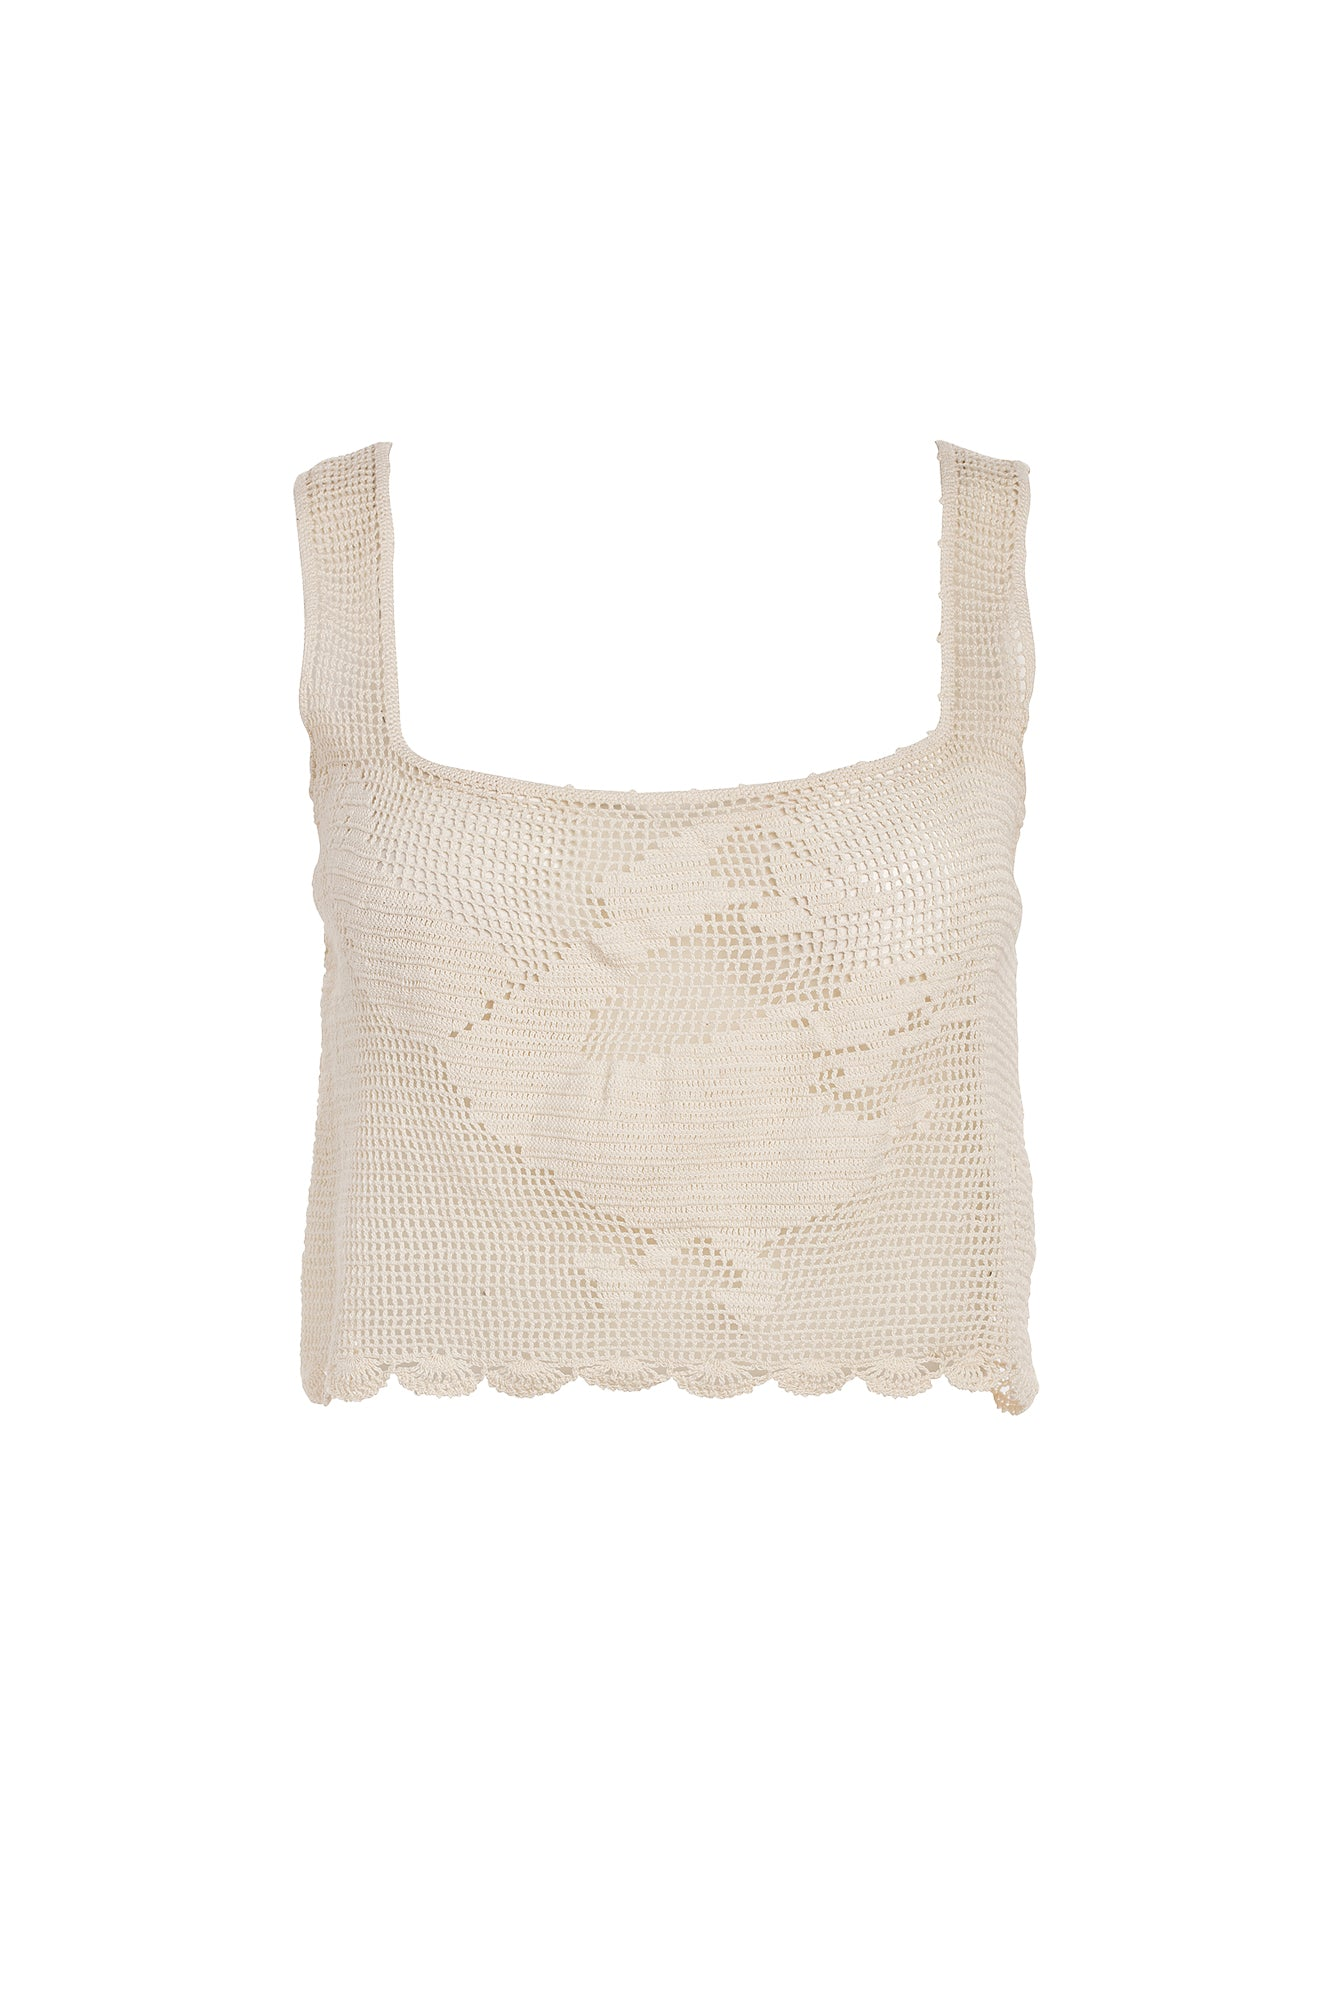 Carolina K Birds Crochet Top in Cream